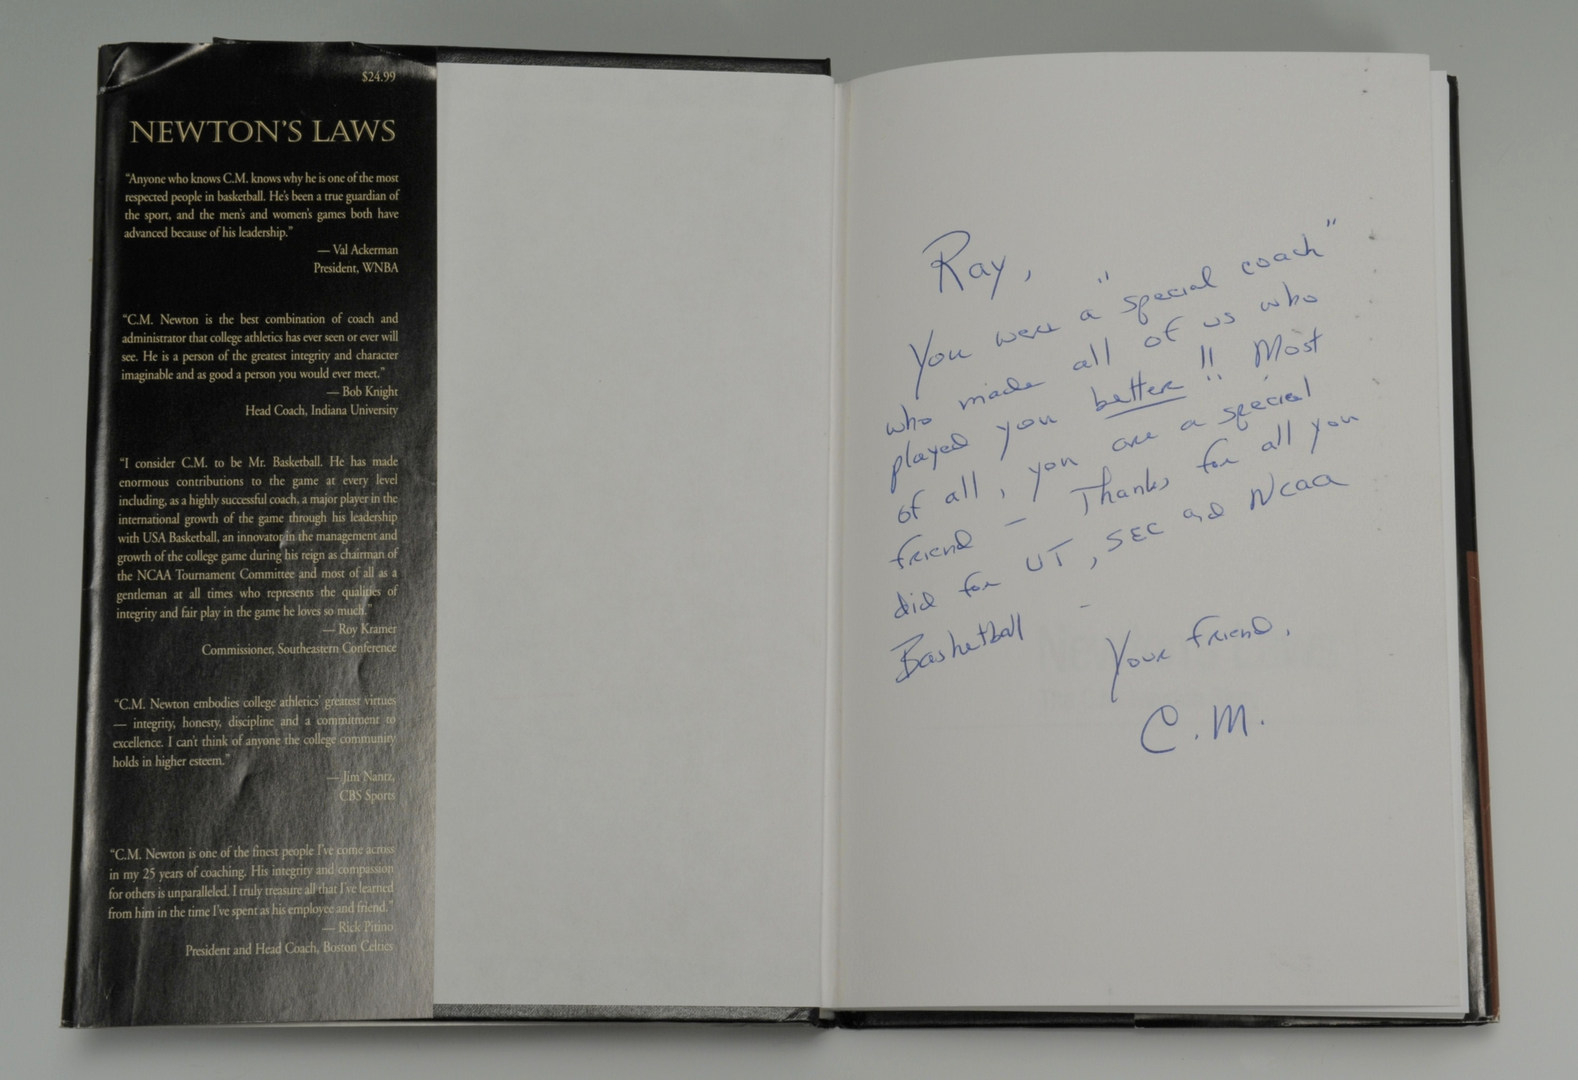 Lot 604: Collection of 9 signed books to Ray Mears